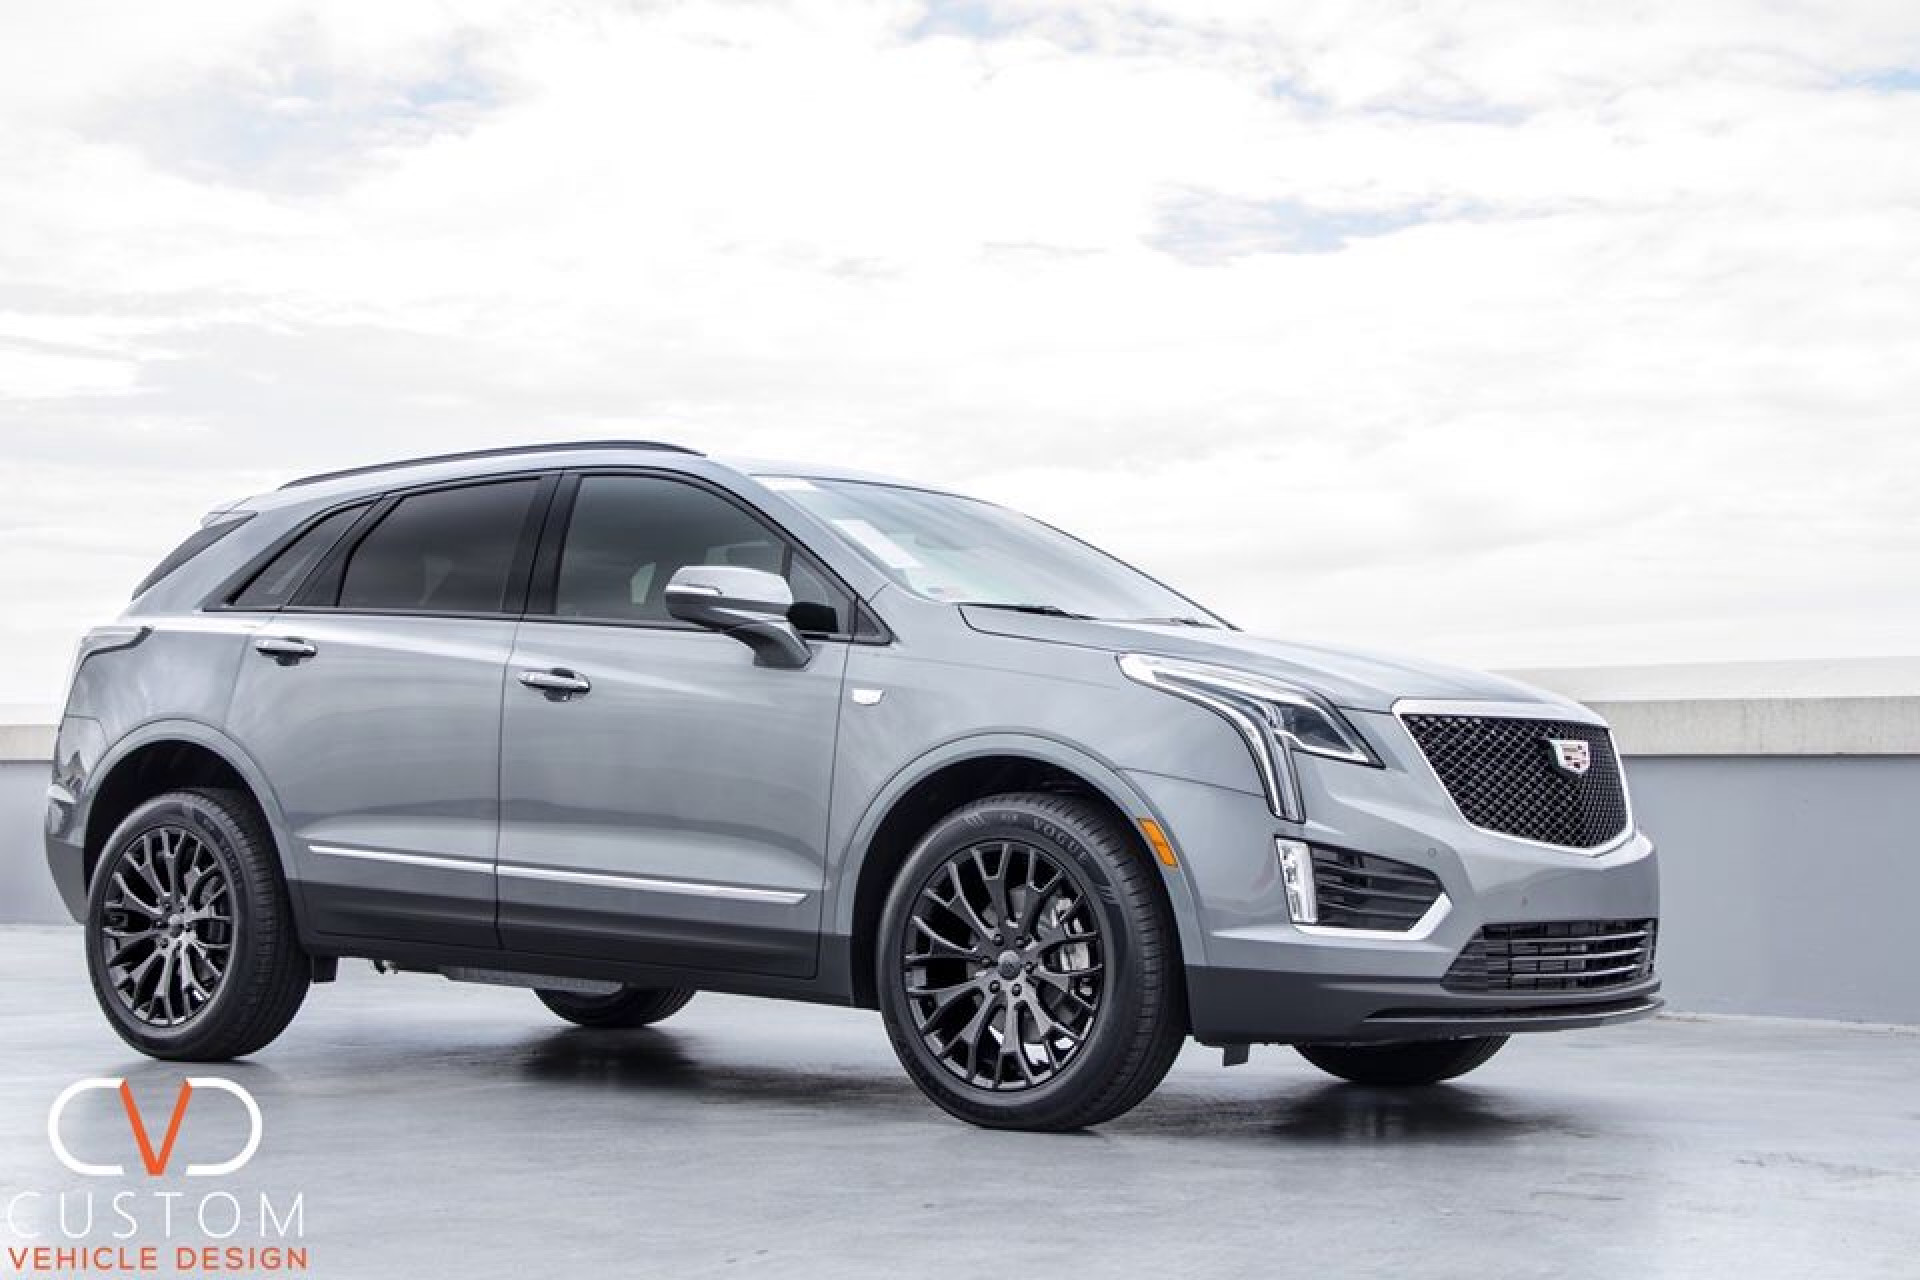 2019 Cadillac XT5 with Gloss Black Vogue VT383 wheels and Vogue Signature V SCT2 Tyres